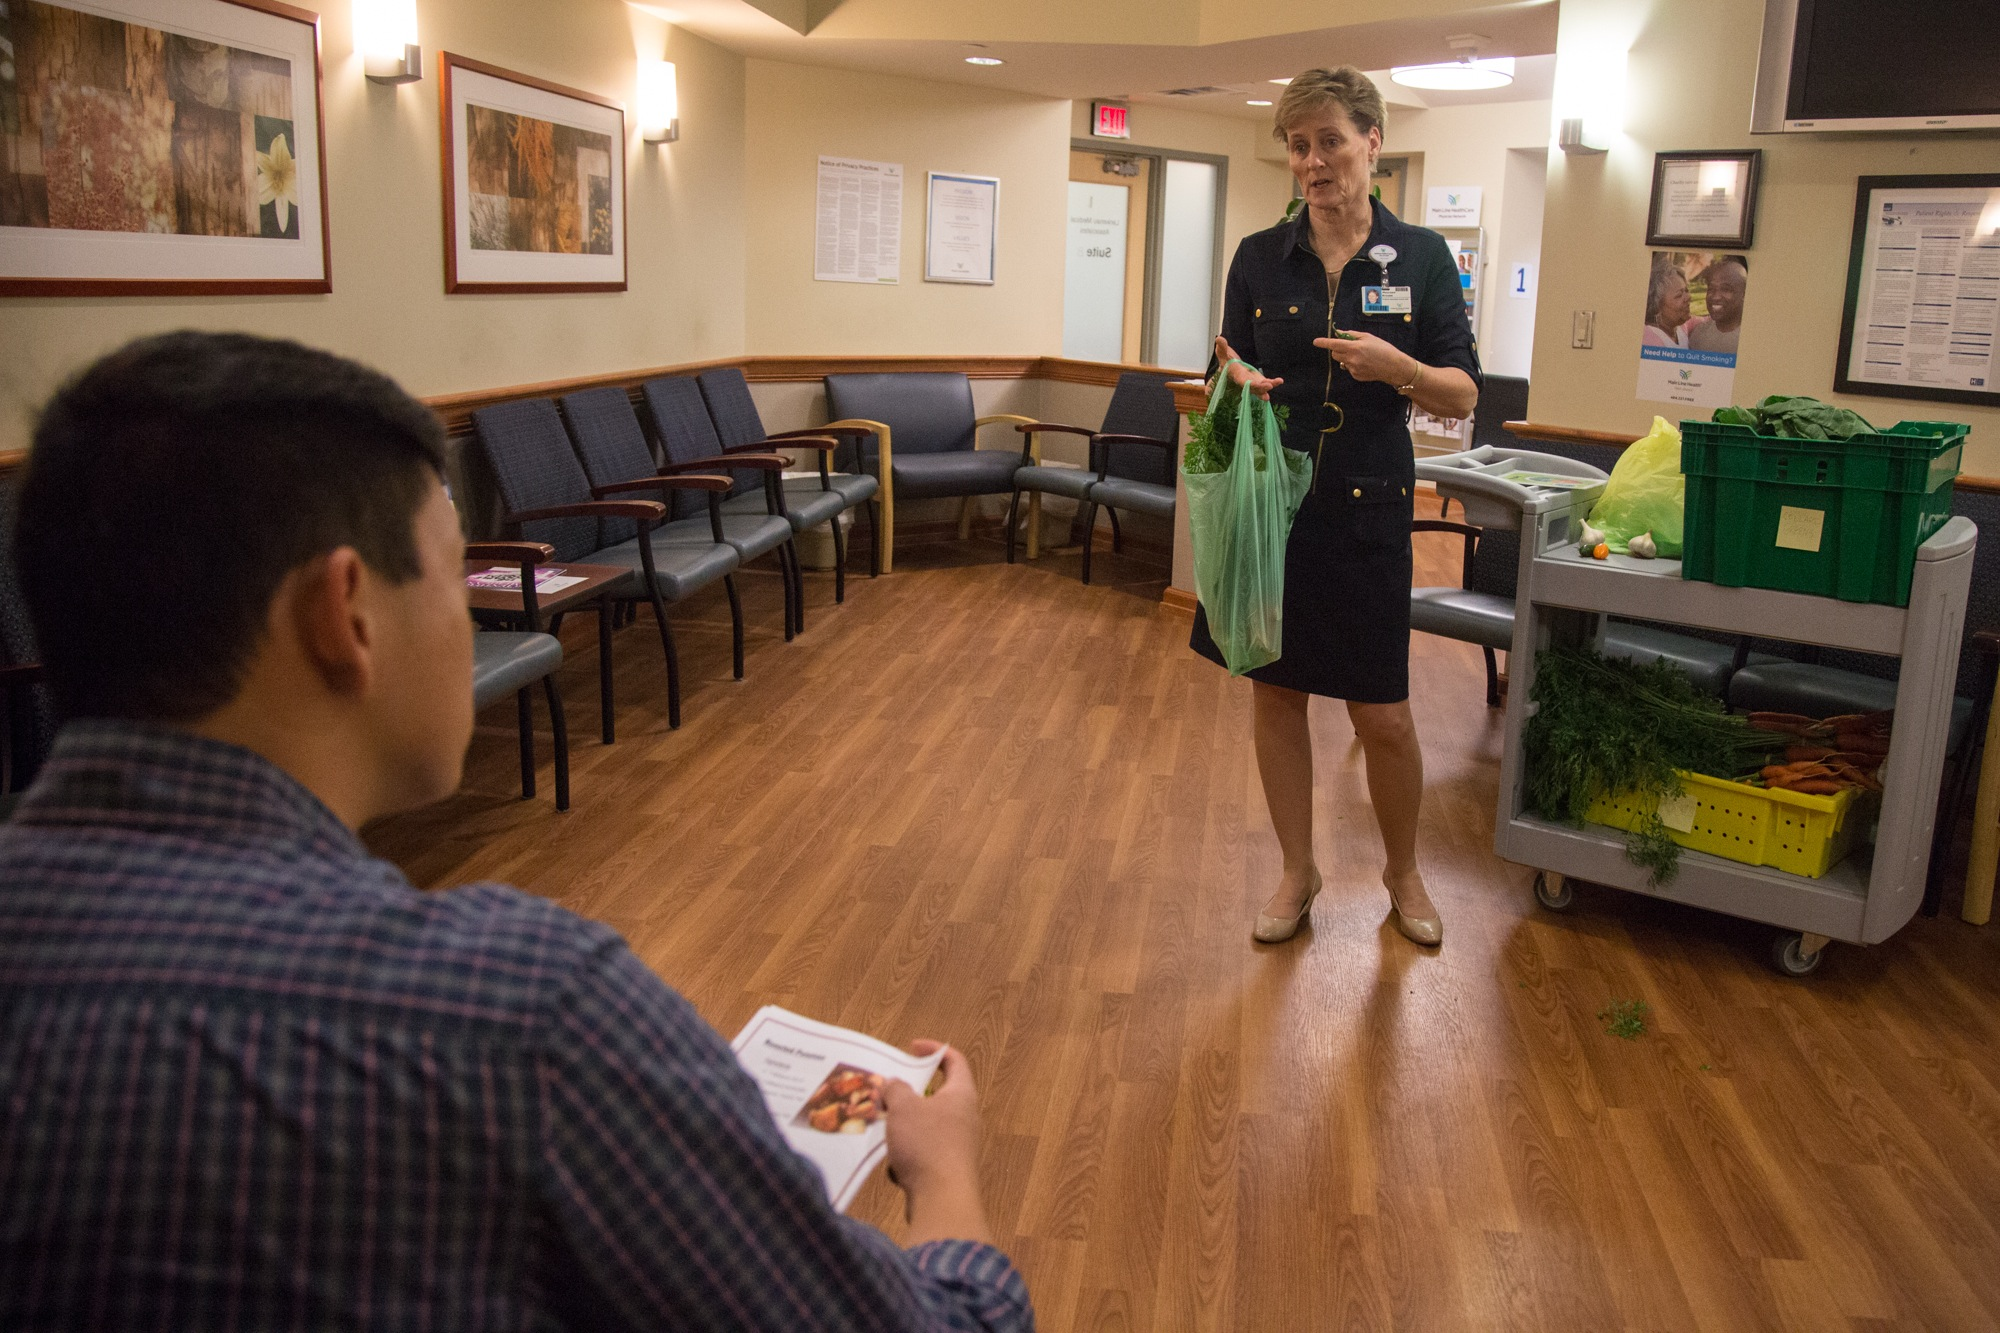 Maureen Krouse talks to Jason Paik about the produce from the hospital's wellness farm, available to him in the waiting room at Lankenau Hospital's integrated health practice.